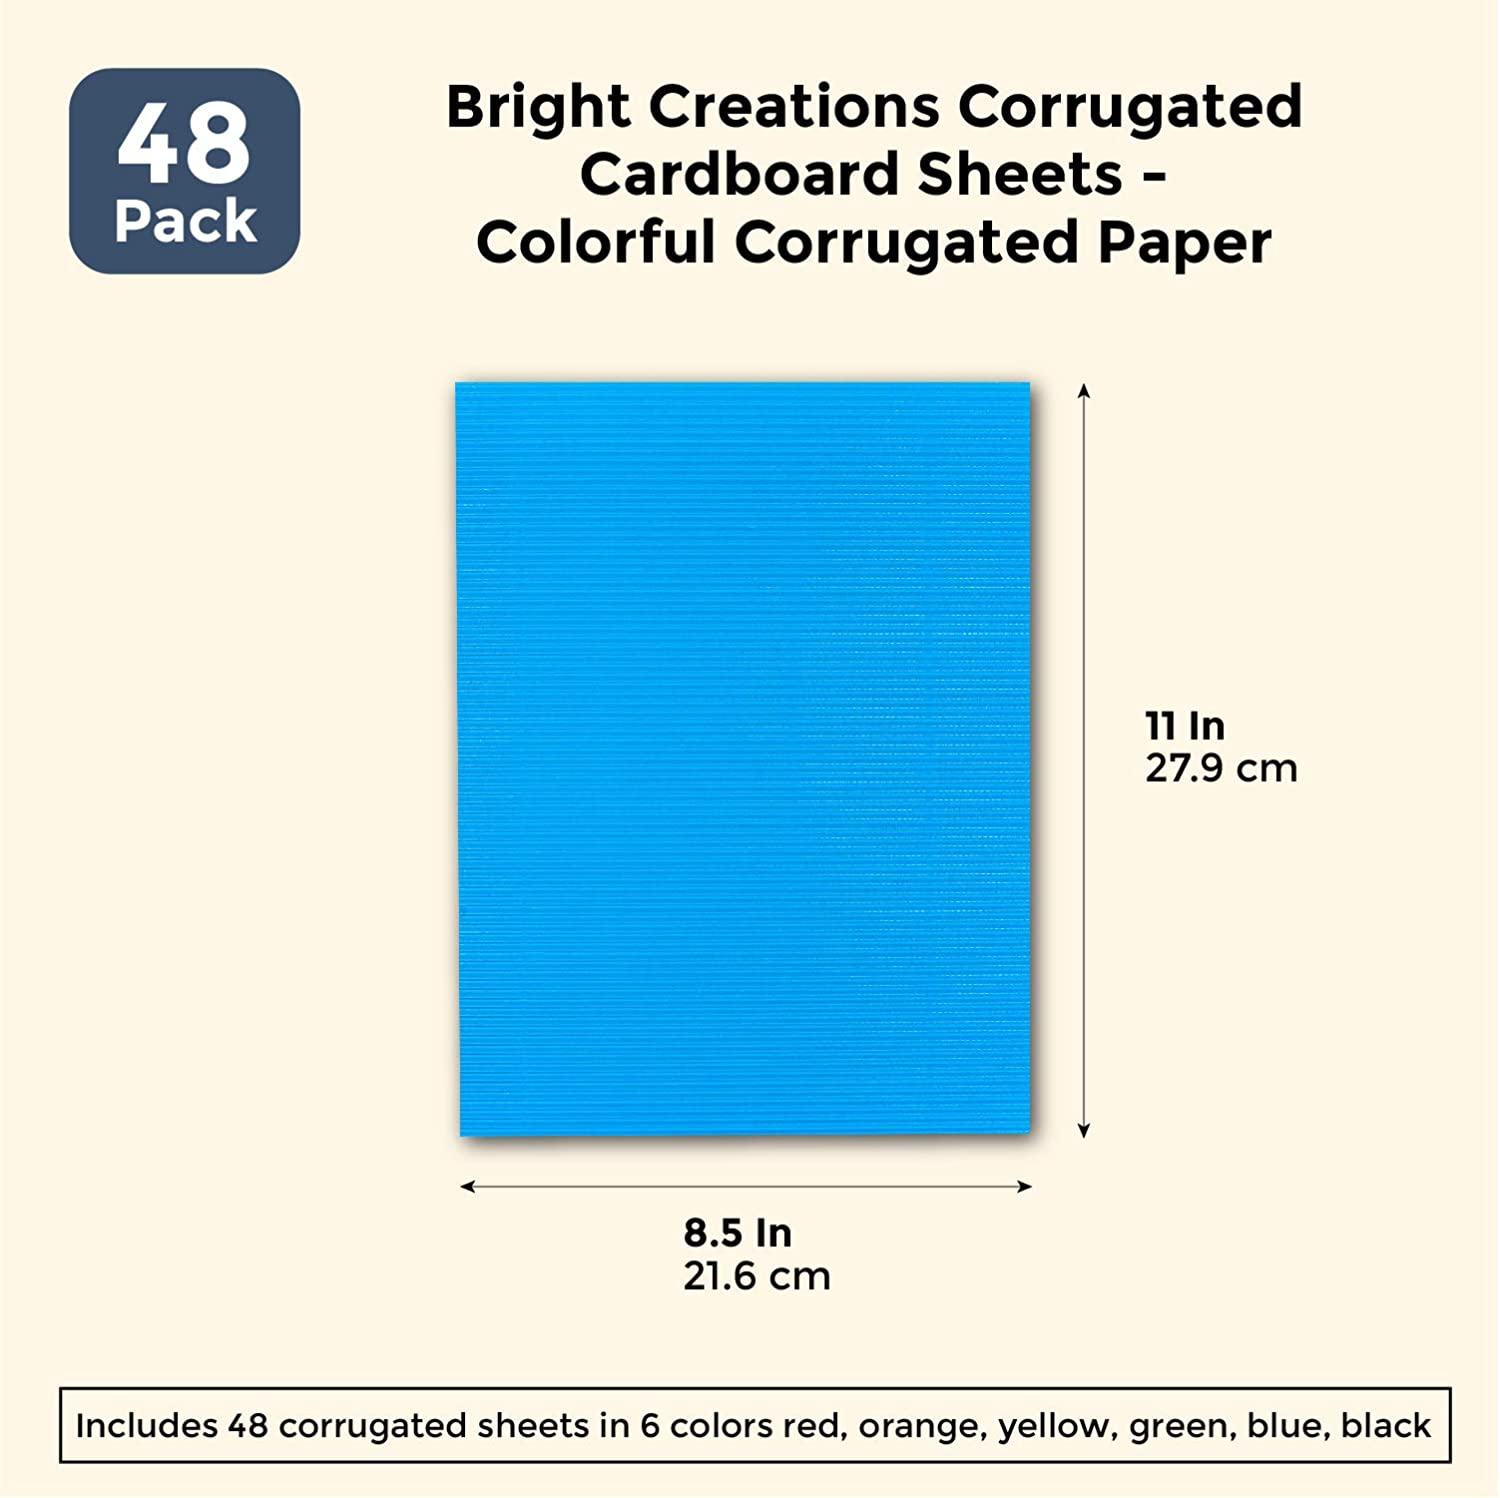 Bright Creations 48 Pack Corrugated Cardboard Sheets Colorful Corrugated Paper 8.5 x 11 inches